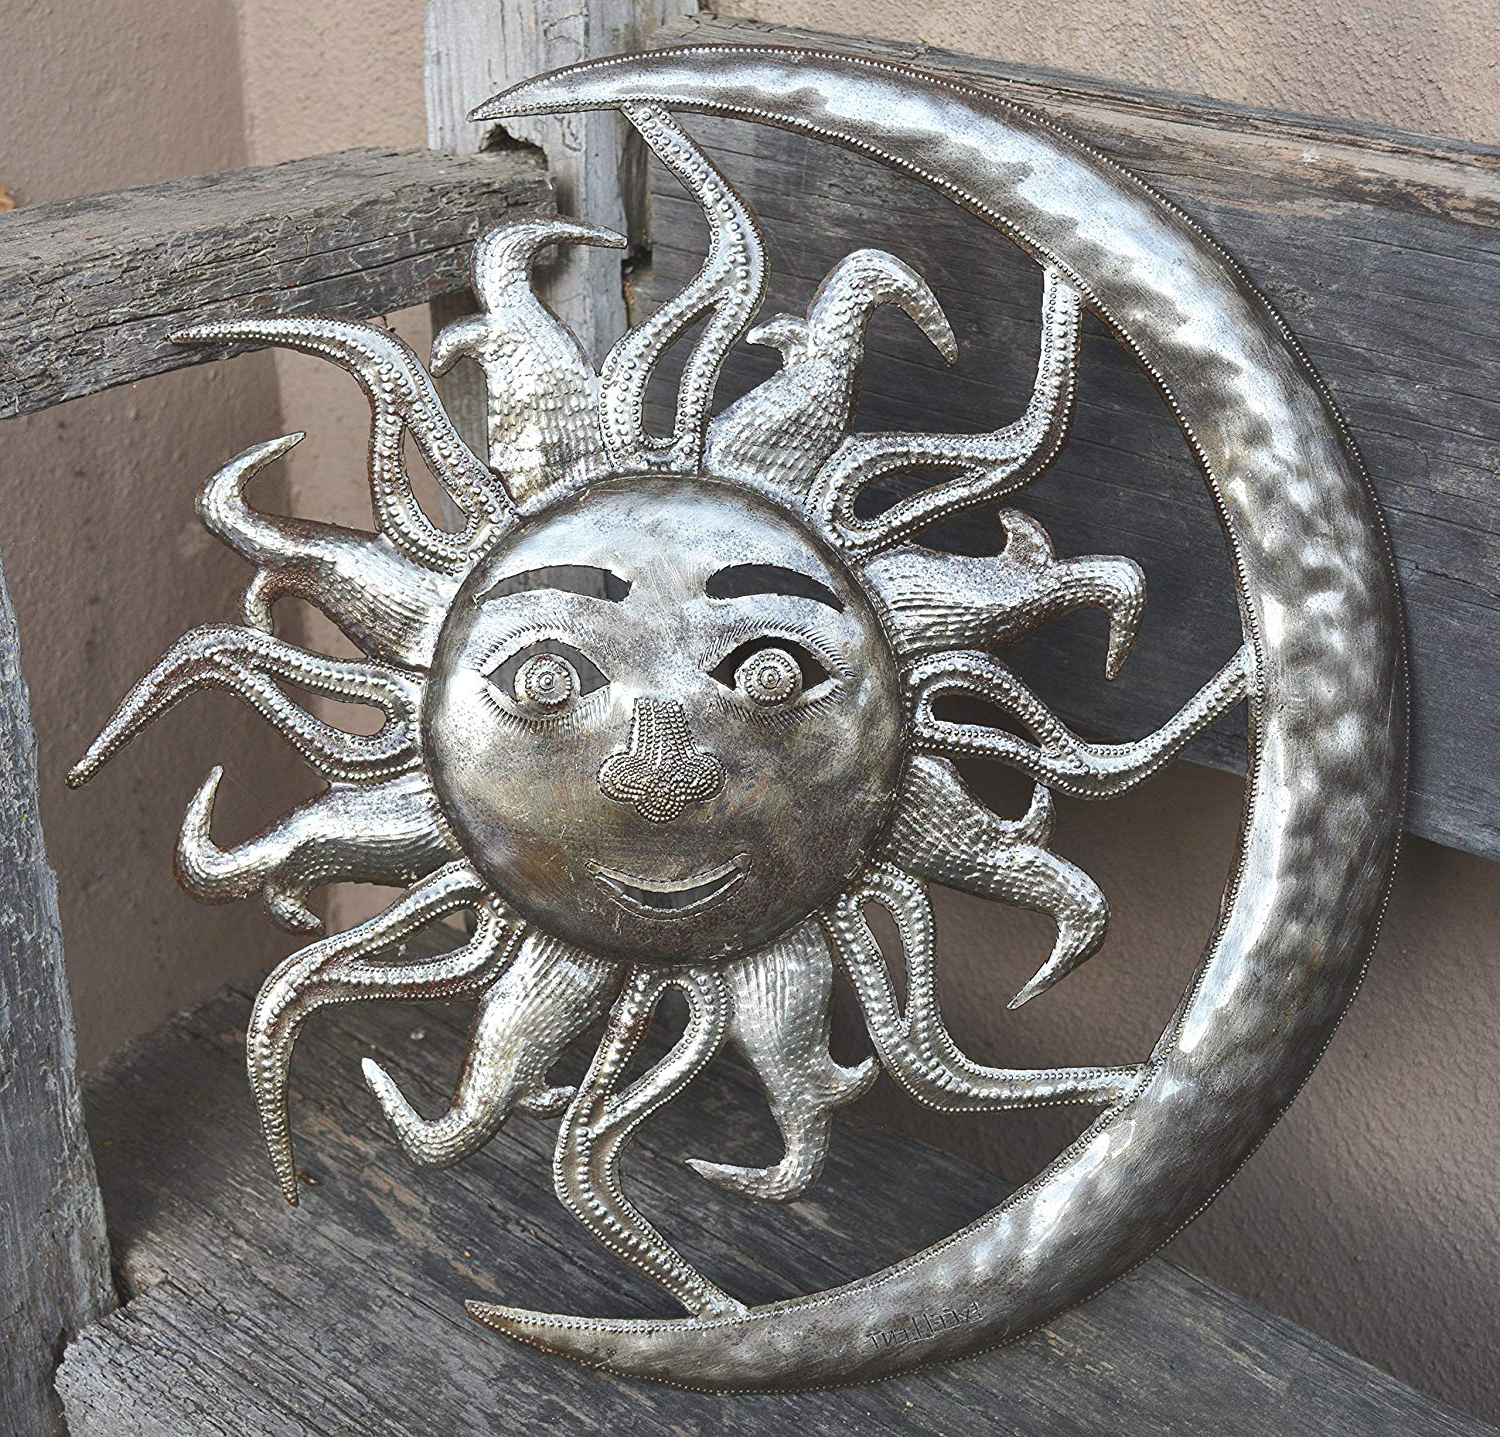 Newest Recycled Moon And Sun Wall Decor Throughout Amazon: Sun In Moon Wall Sculpture, Reclaimed Outdoor Home Art (View 8 of 20)